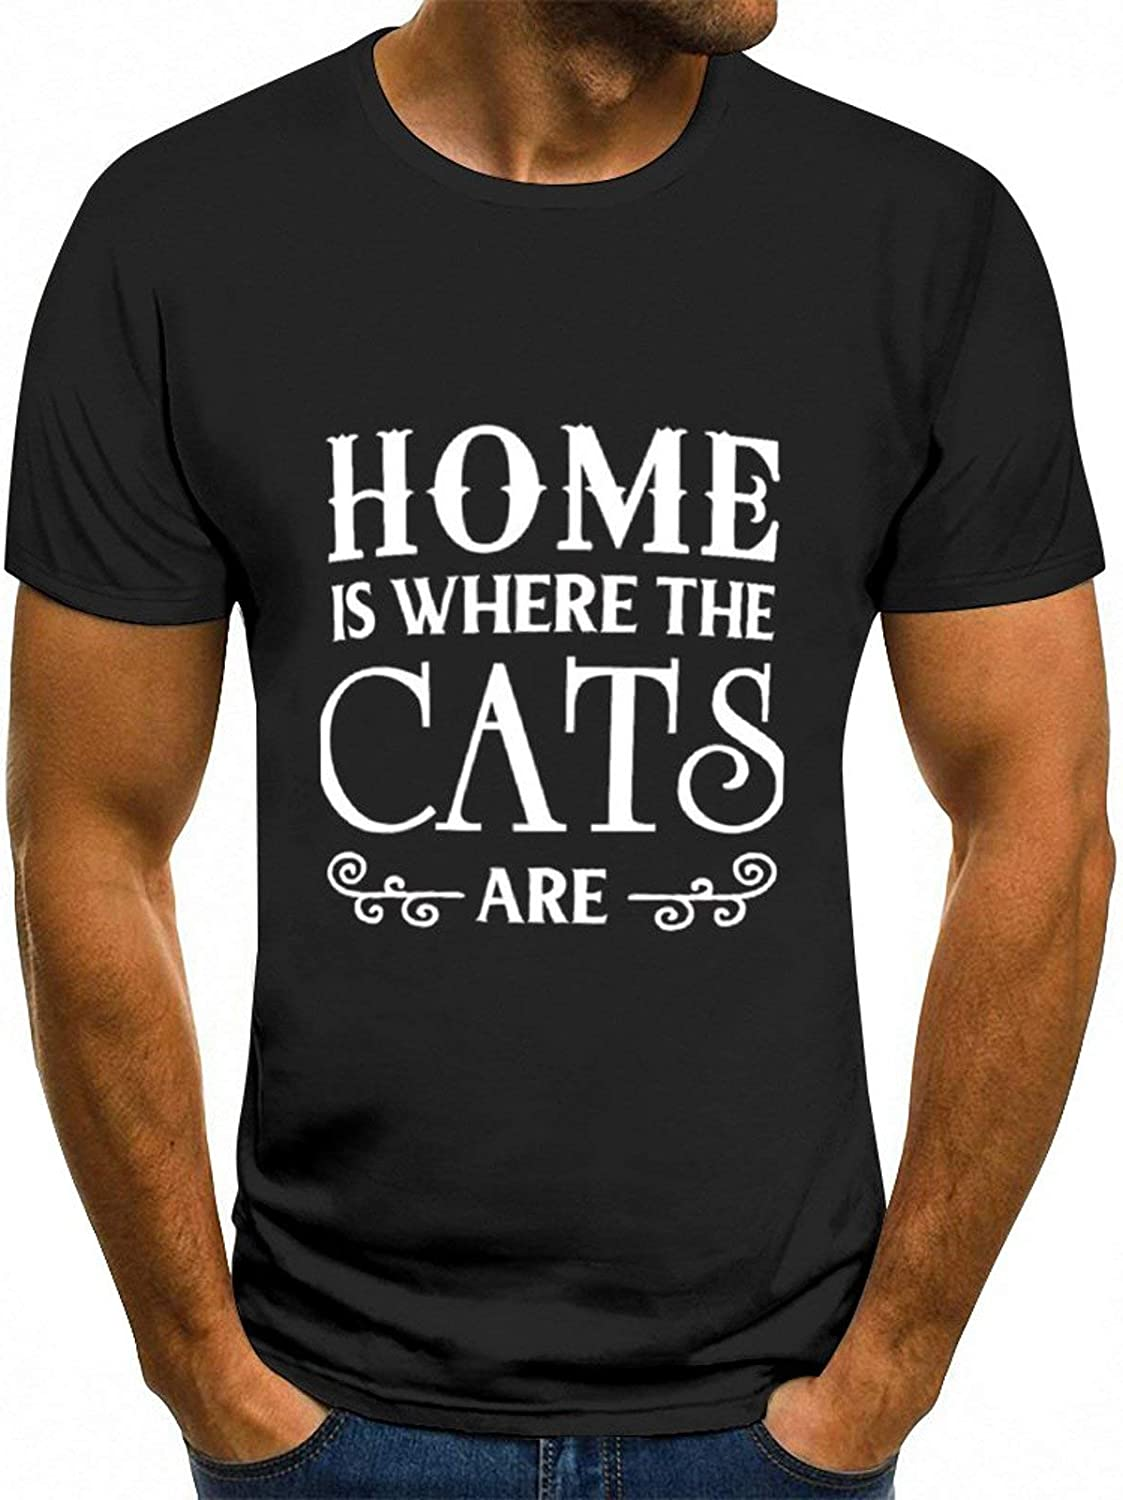 Unisex Cool Home is Where The Cats are Print Short Sleeves Shirt Black